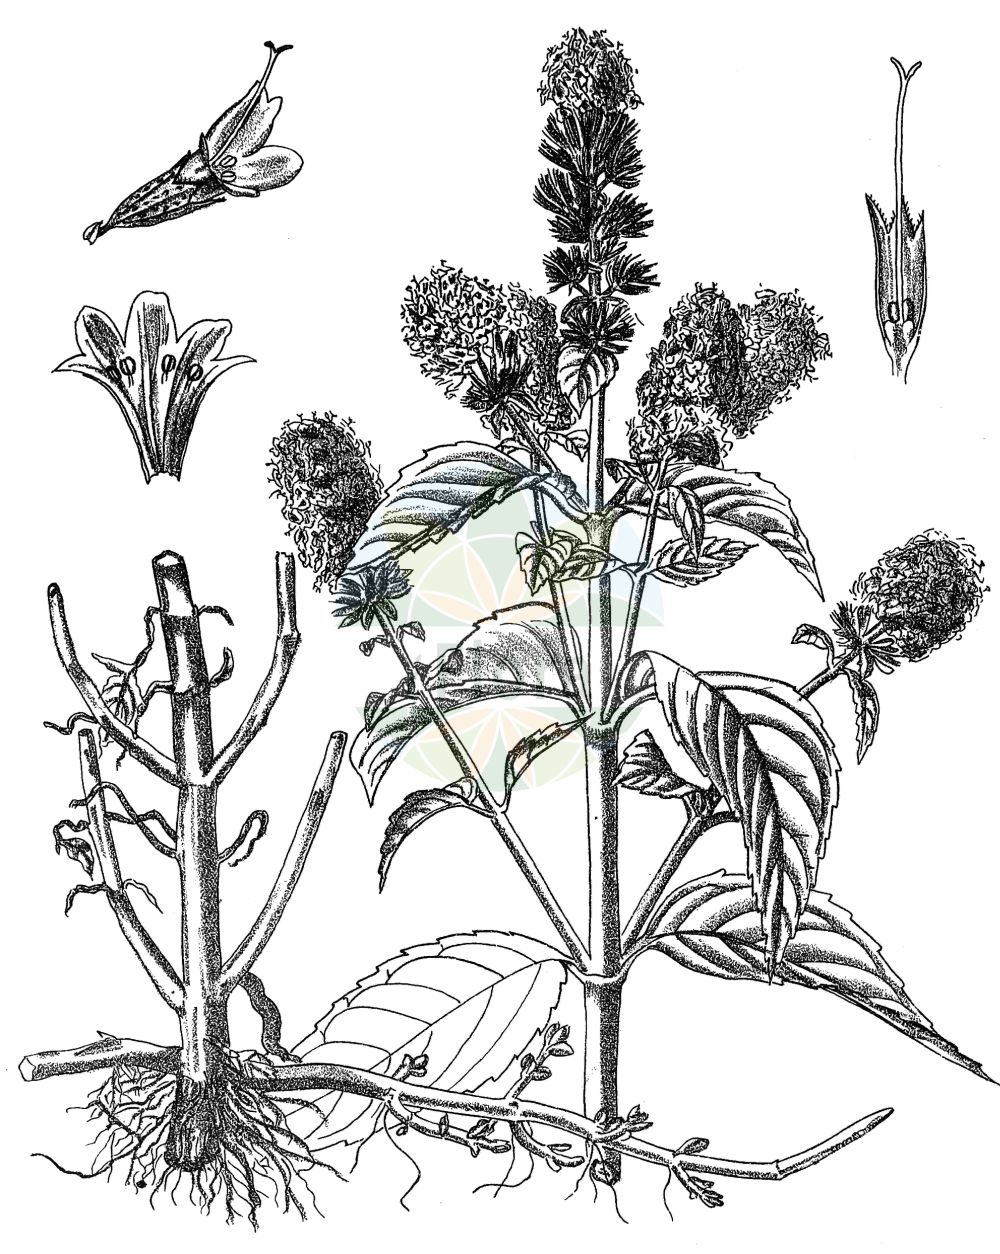 Historische Abbildung von Mentha piperita agg. (Pfeffer-Minze - Chocolate Mint). Das Bild zeigt Blatt, Bluete, Frucht und Same. ---- Historical Drawing of Mentha piperita agg. (Pfeffer-Minze - Chocolate Mint).The image is showing leaf, flower, fruit and seed.(Mentha piperita agg.,Pfeffer-Minze,Chocolate Mint,Mentha piperita,Pfeffer-Minze,Chocolate Mint,Mentha,Minze,Mint,Lamiaceae,Lippenbluetengewaechse,Lippenbluetler,Nettle family,Blatt,Bluete,Frucht,Same,leaf,flower,fruit,seed,Kirtikar & Basu (1918))